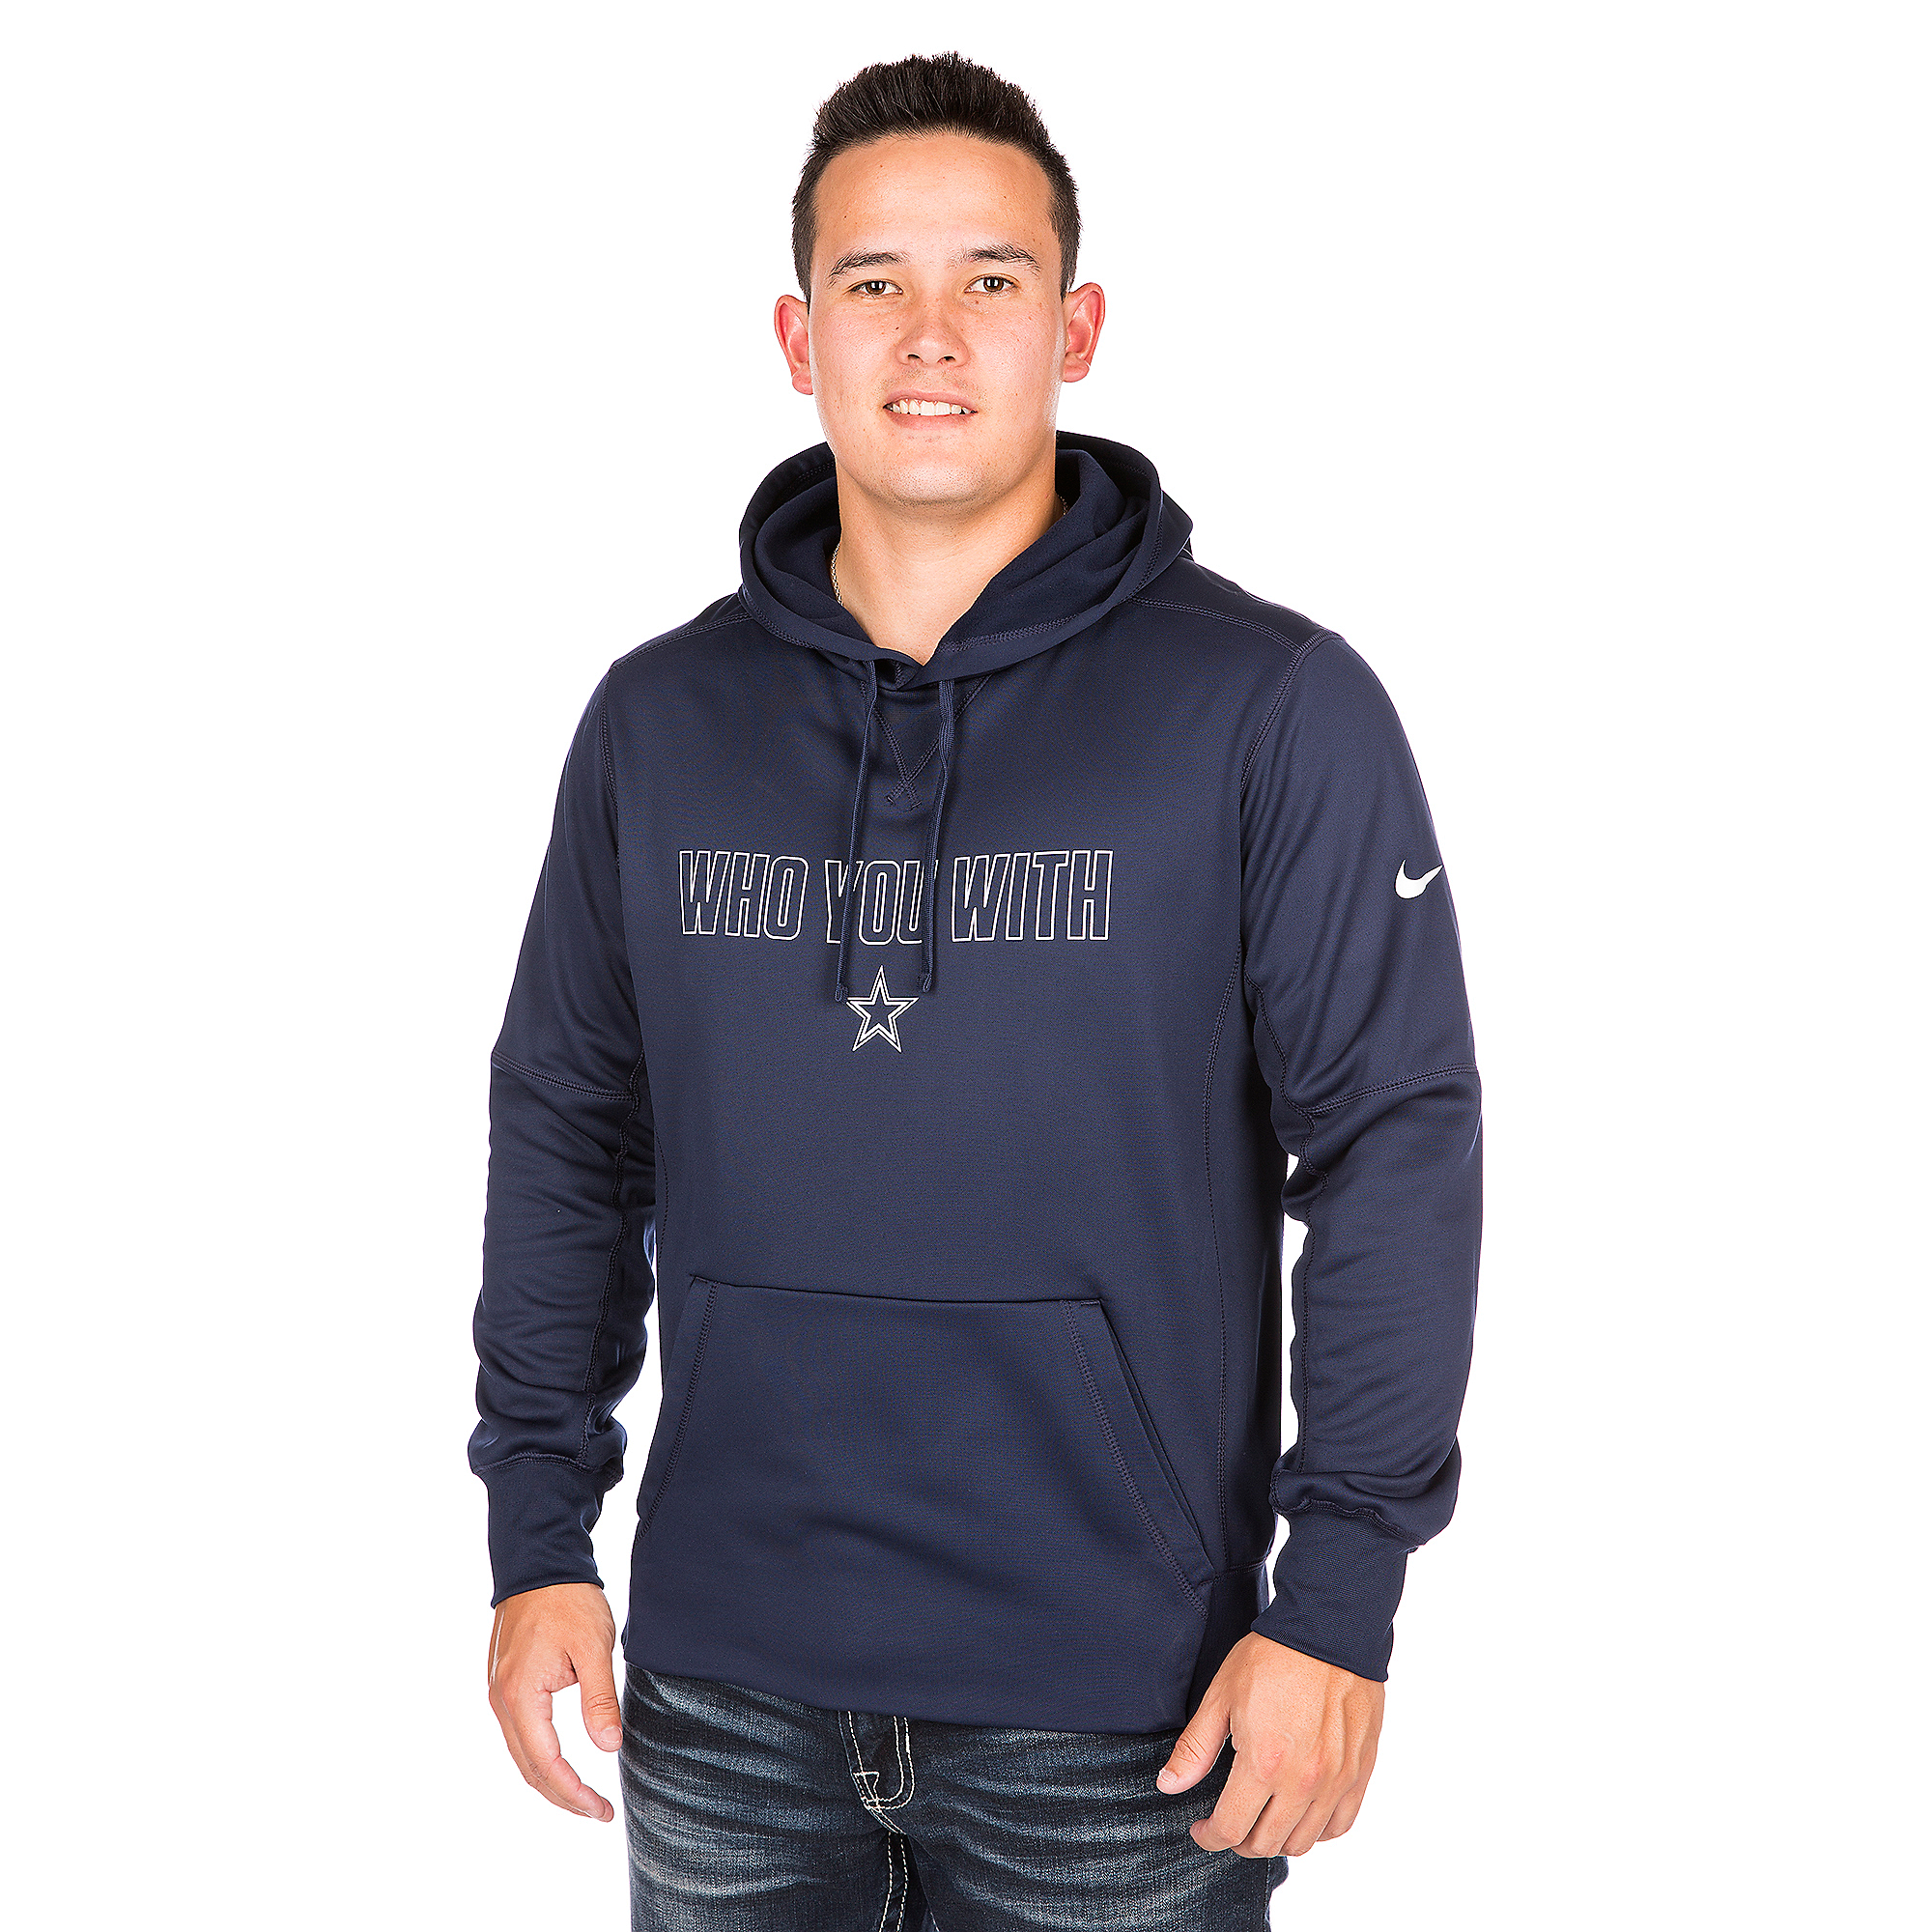 Dallas Cowboys Nike Who You With Hoody